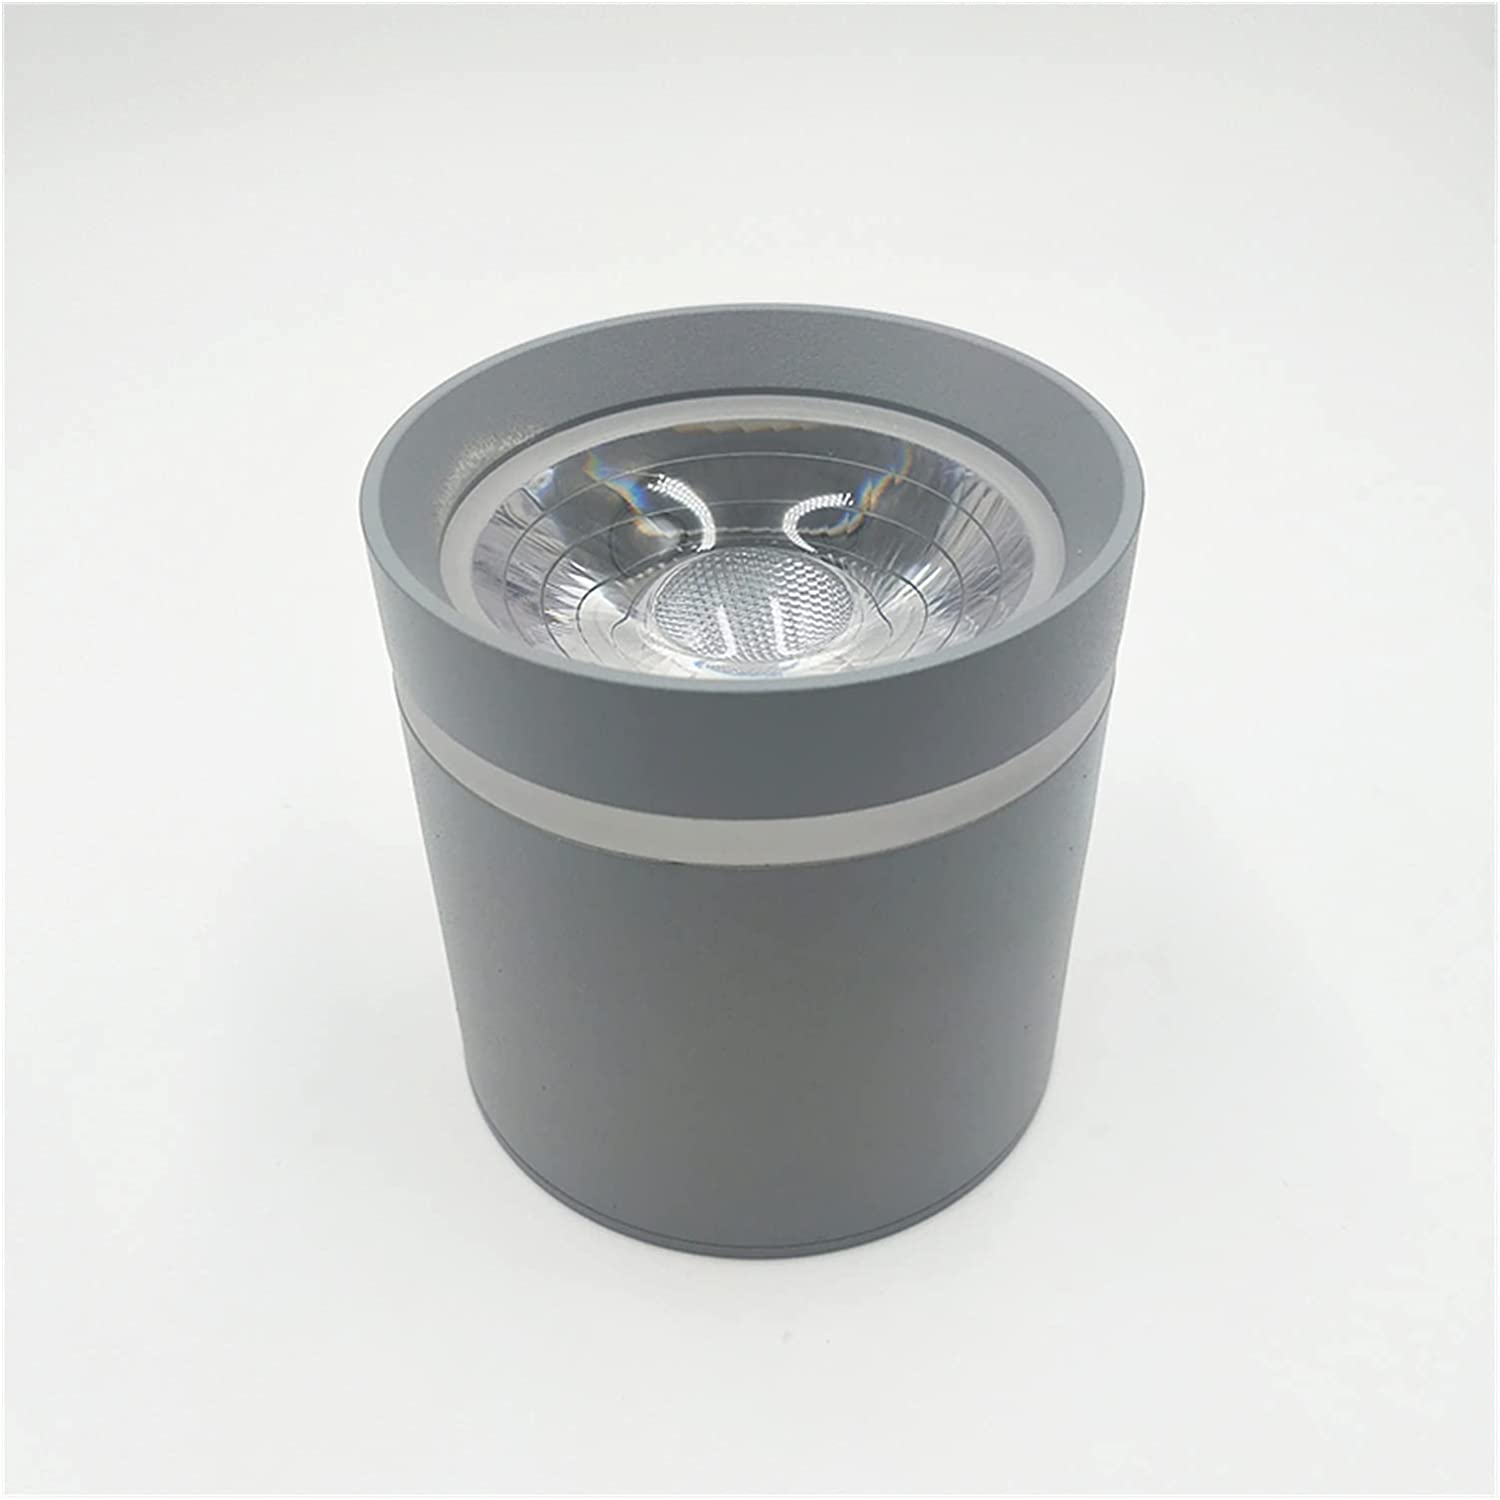 LED Outlet SALE Sales results No. 1 Spotlight Ceiling Light Spotlights Dimmable Surface Mounted